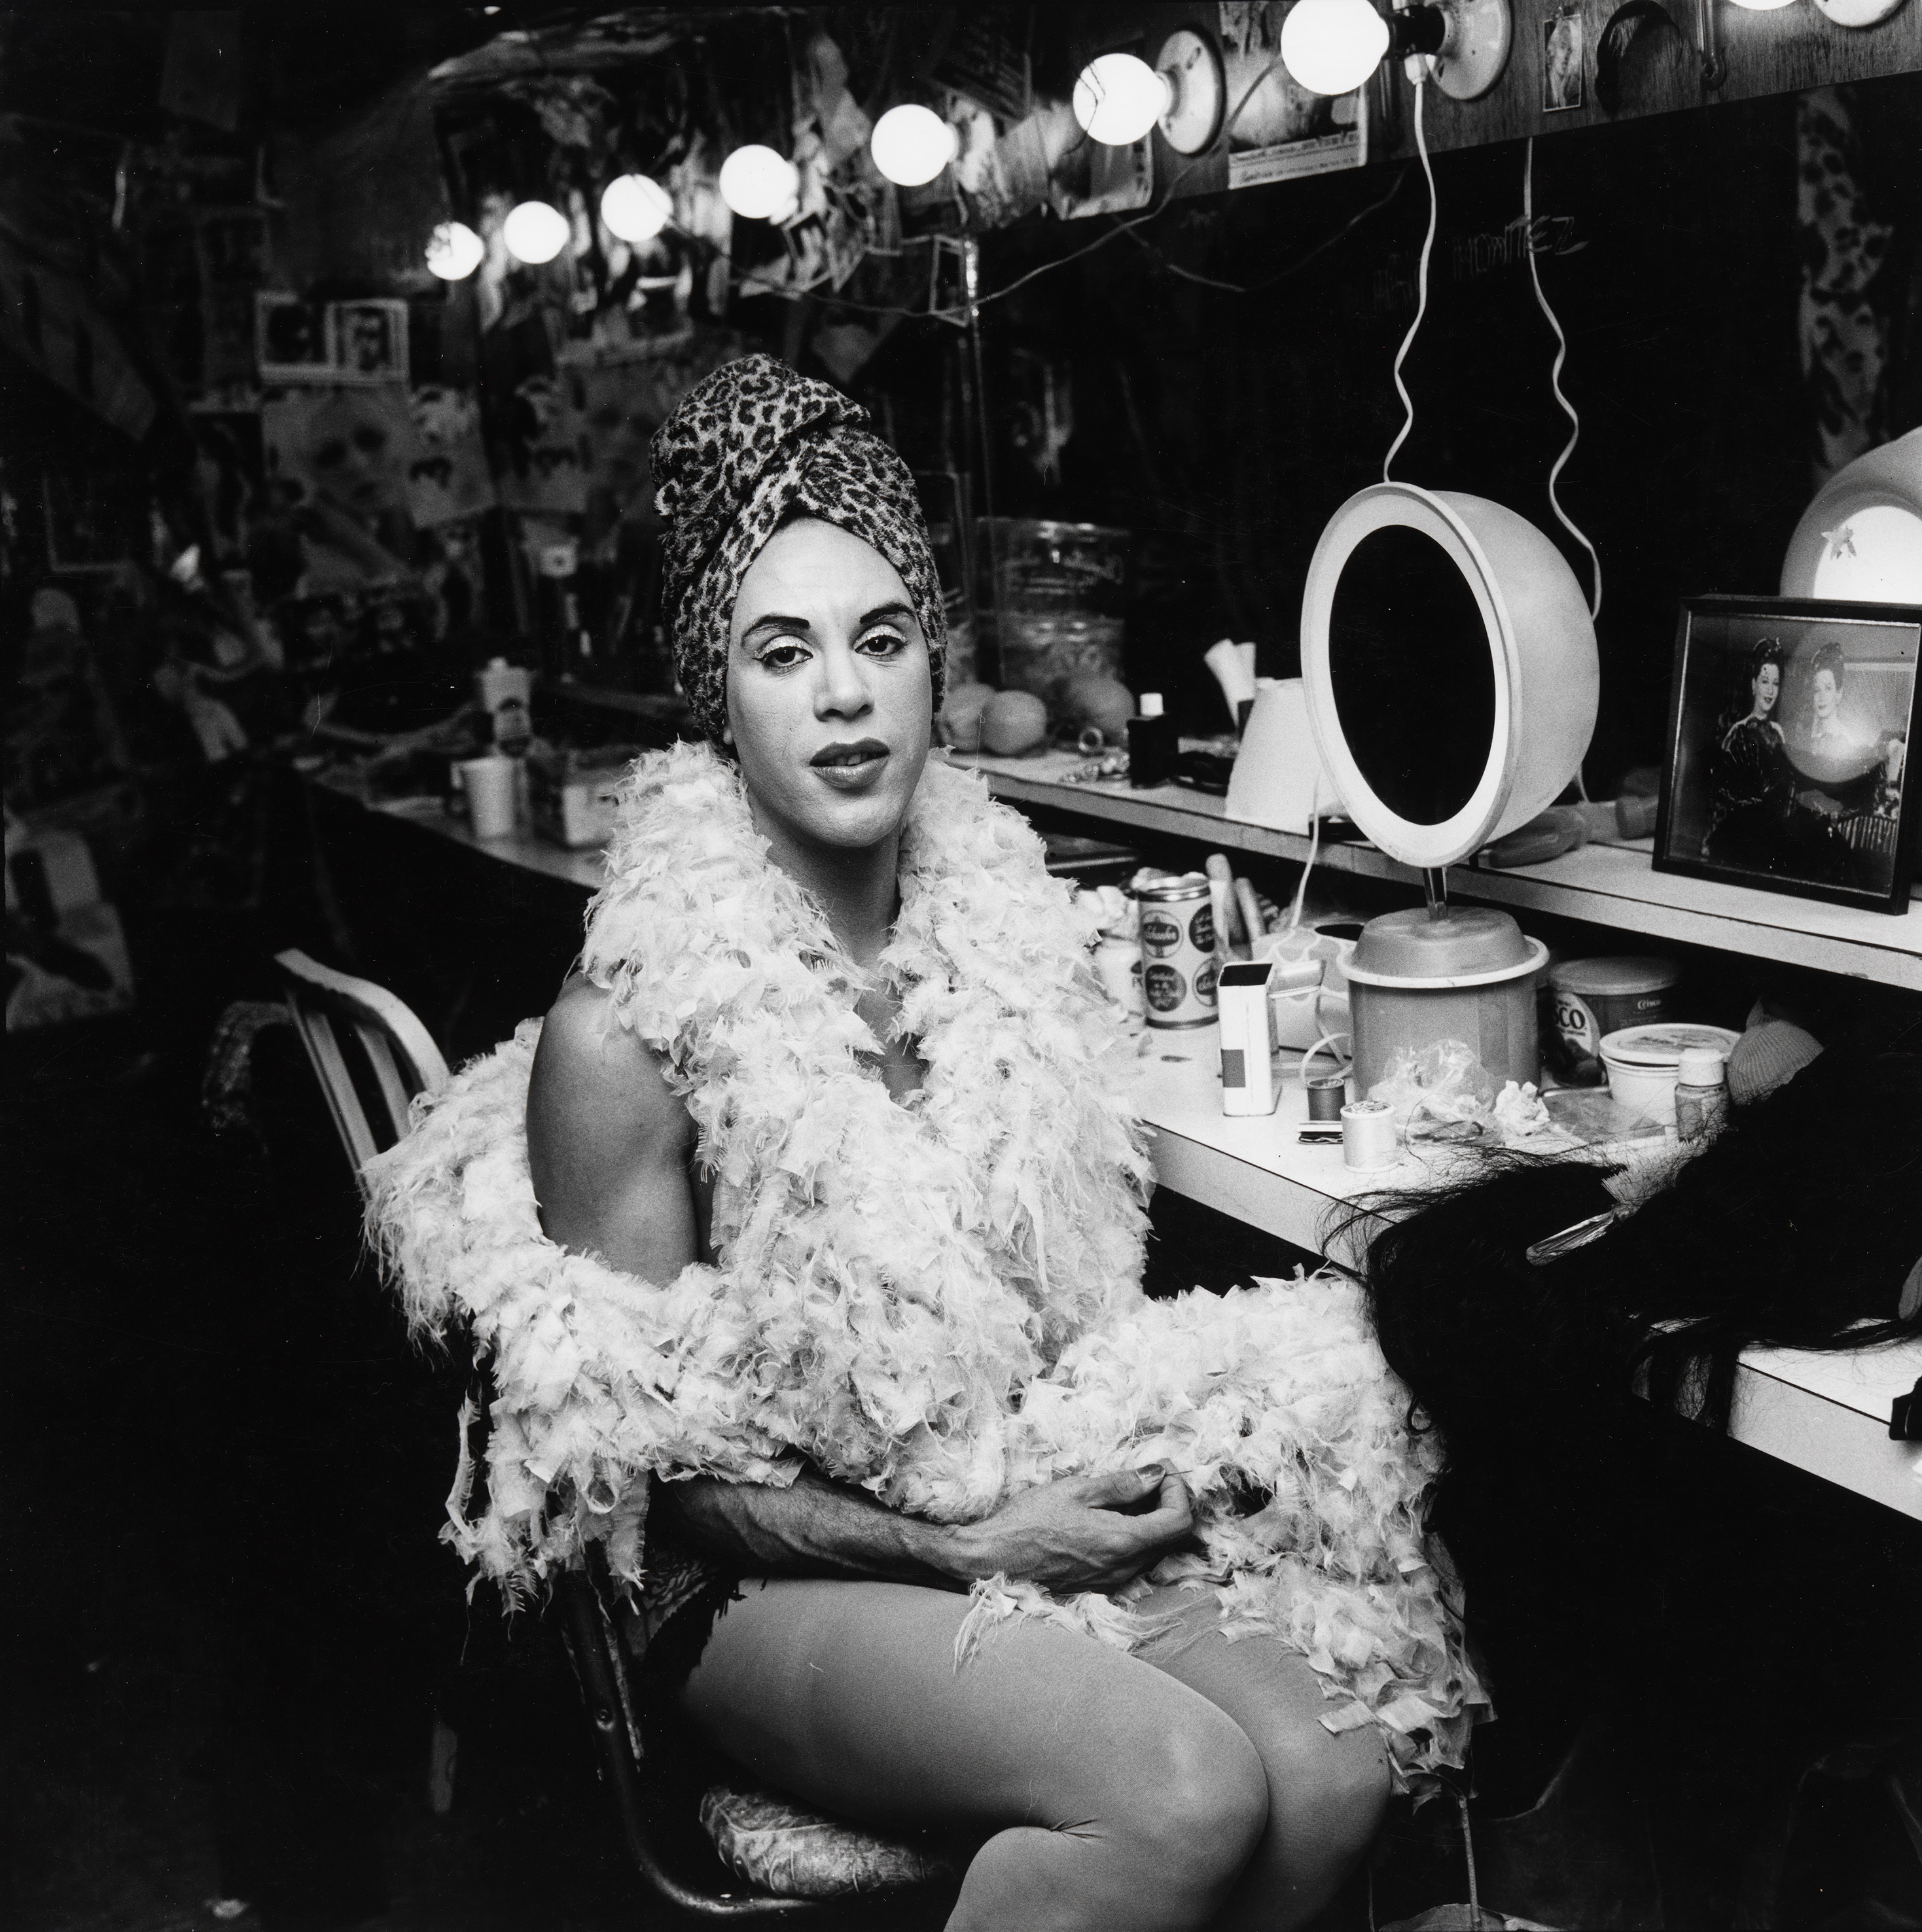 Mario Montez Backstage at the Palm Casino Revue, 1974 © 1987 The Peter Hujar Archive LLC, courtesy The Peter Hujar Archive and Maureen Paley, London